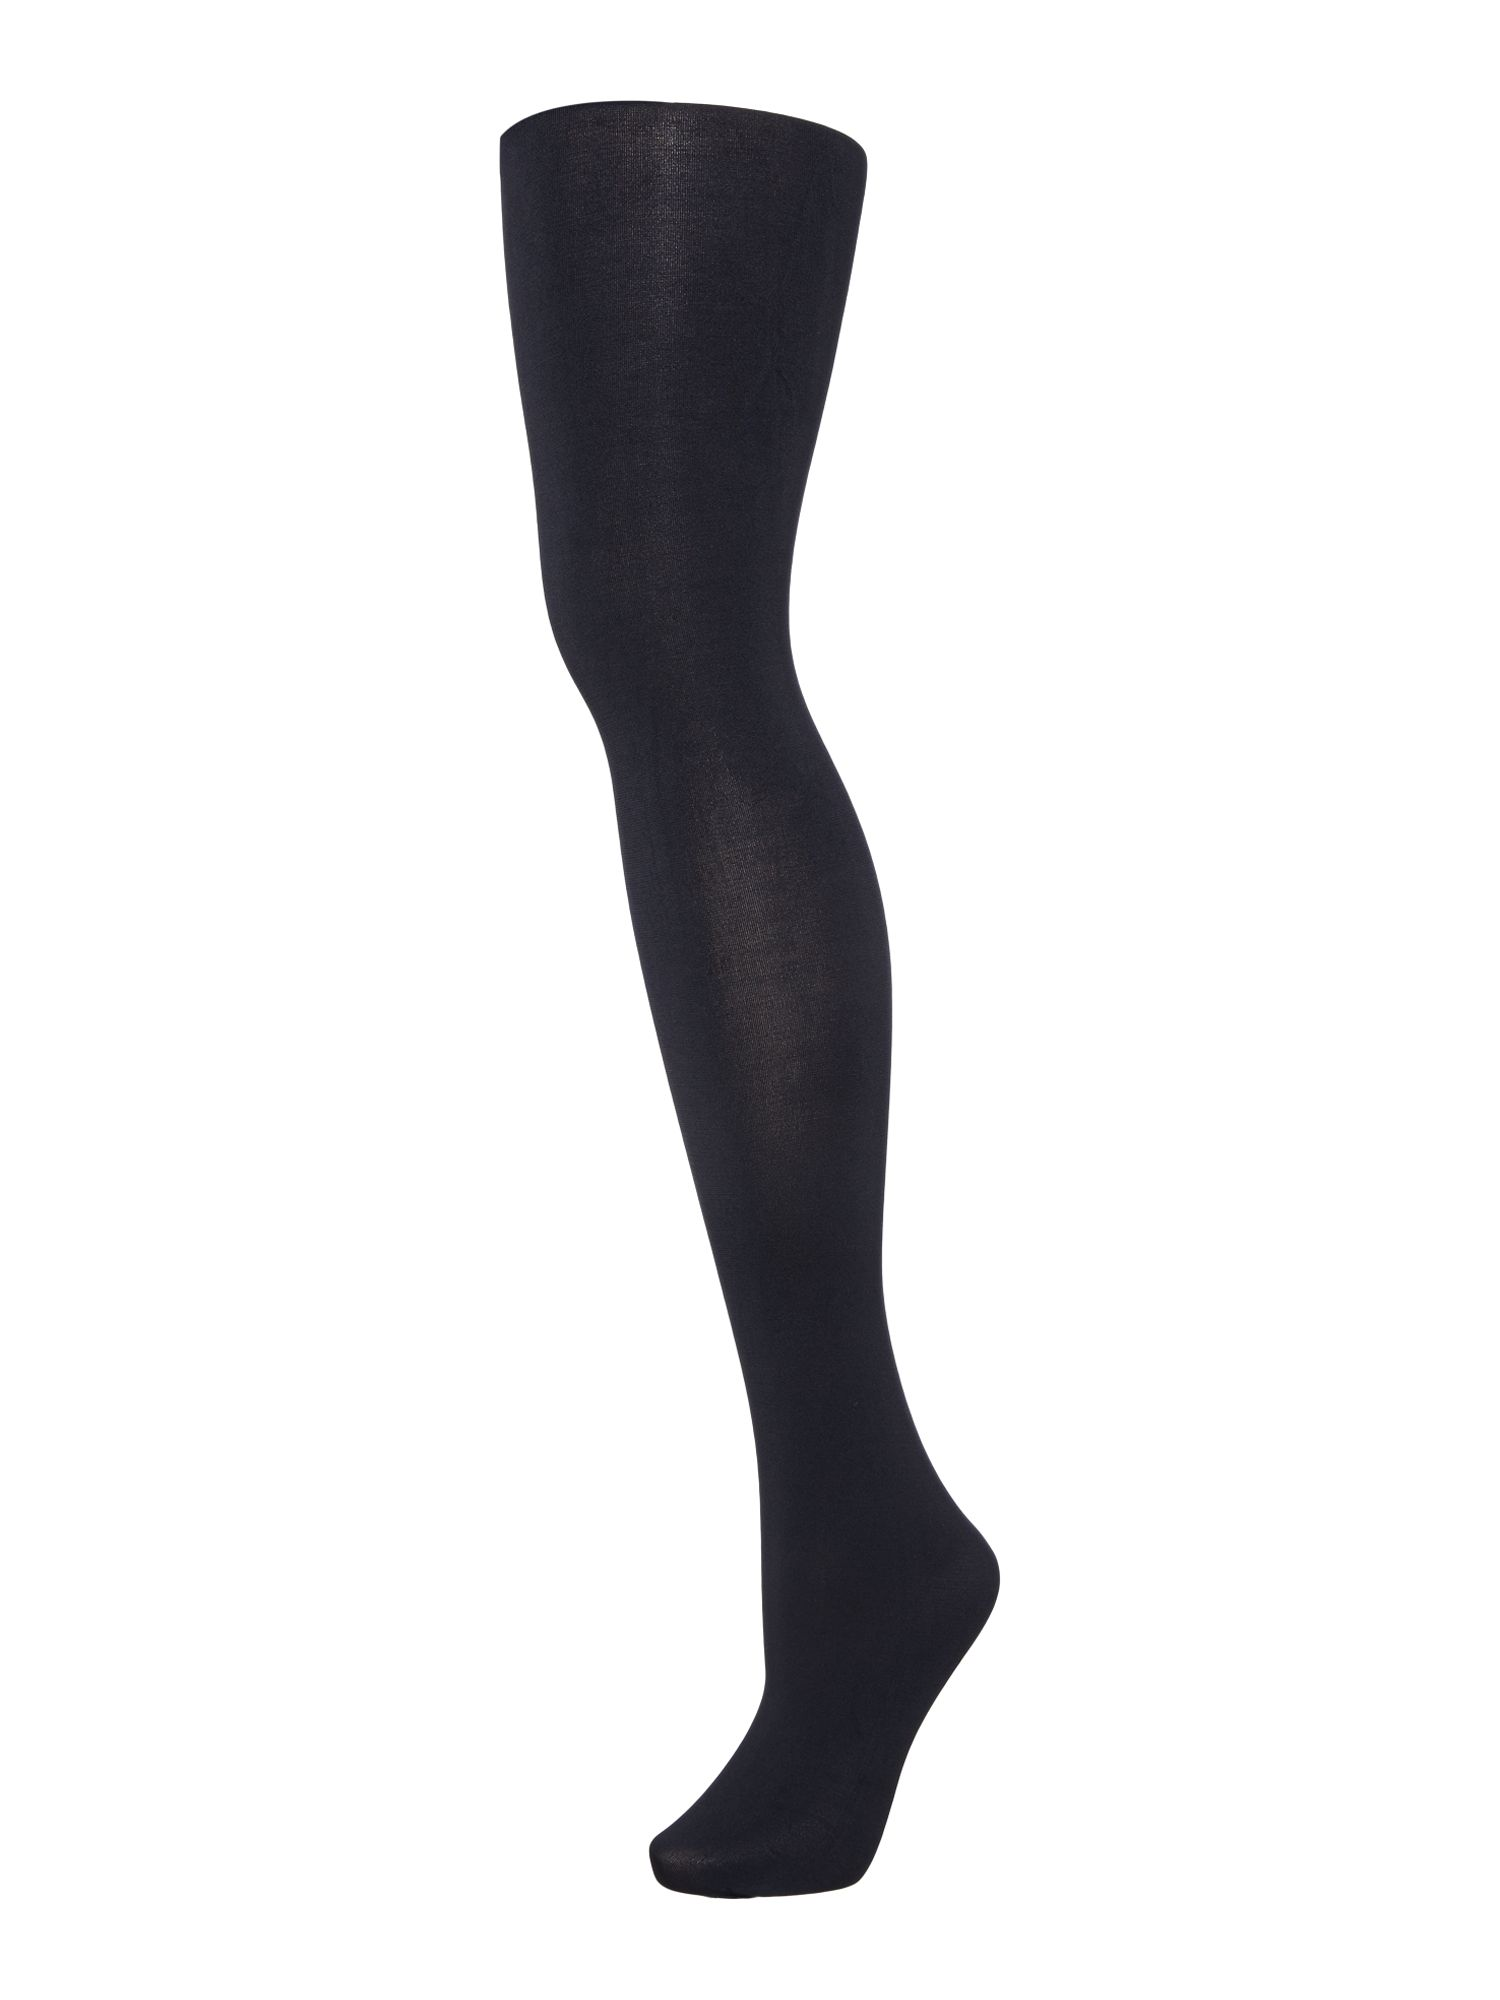 Aristoc Aristoc The ultimate luxury leg 80 denier opaque tights, Navy